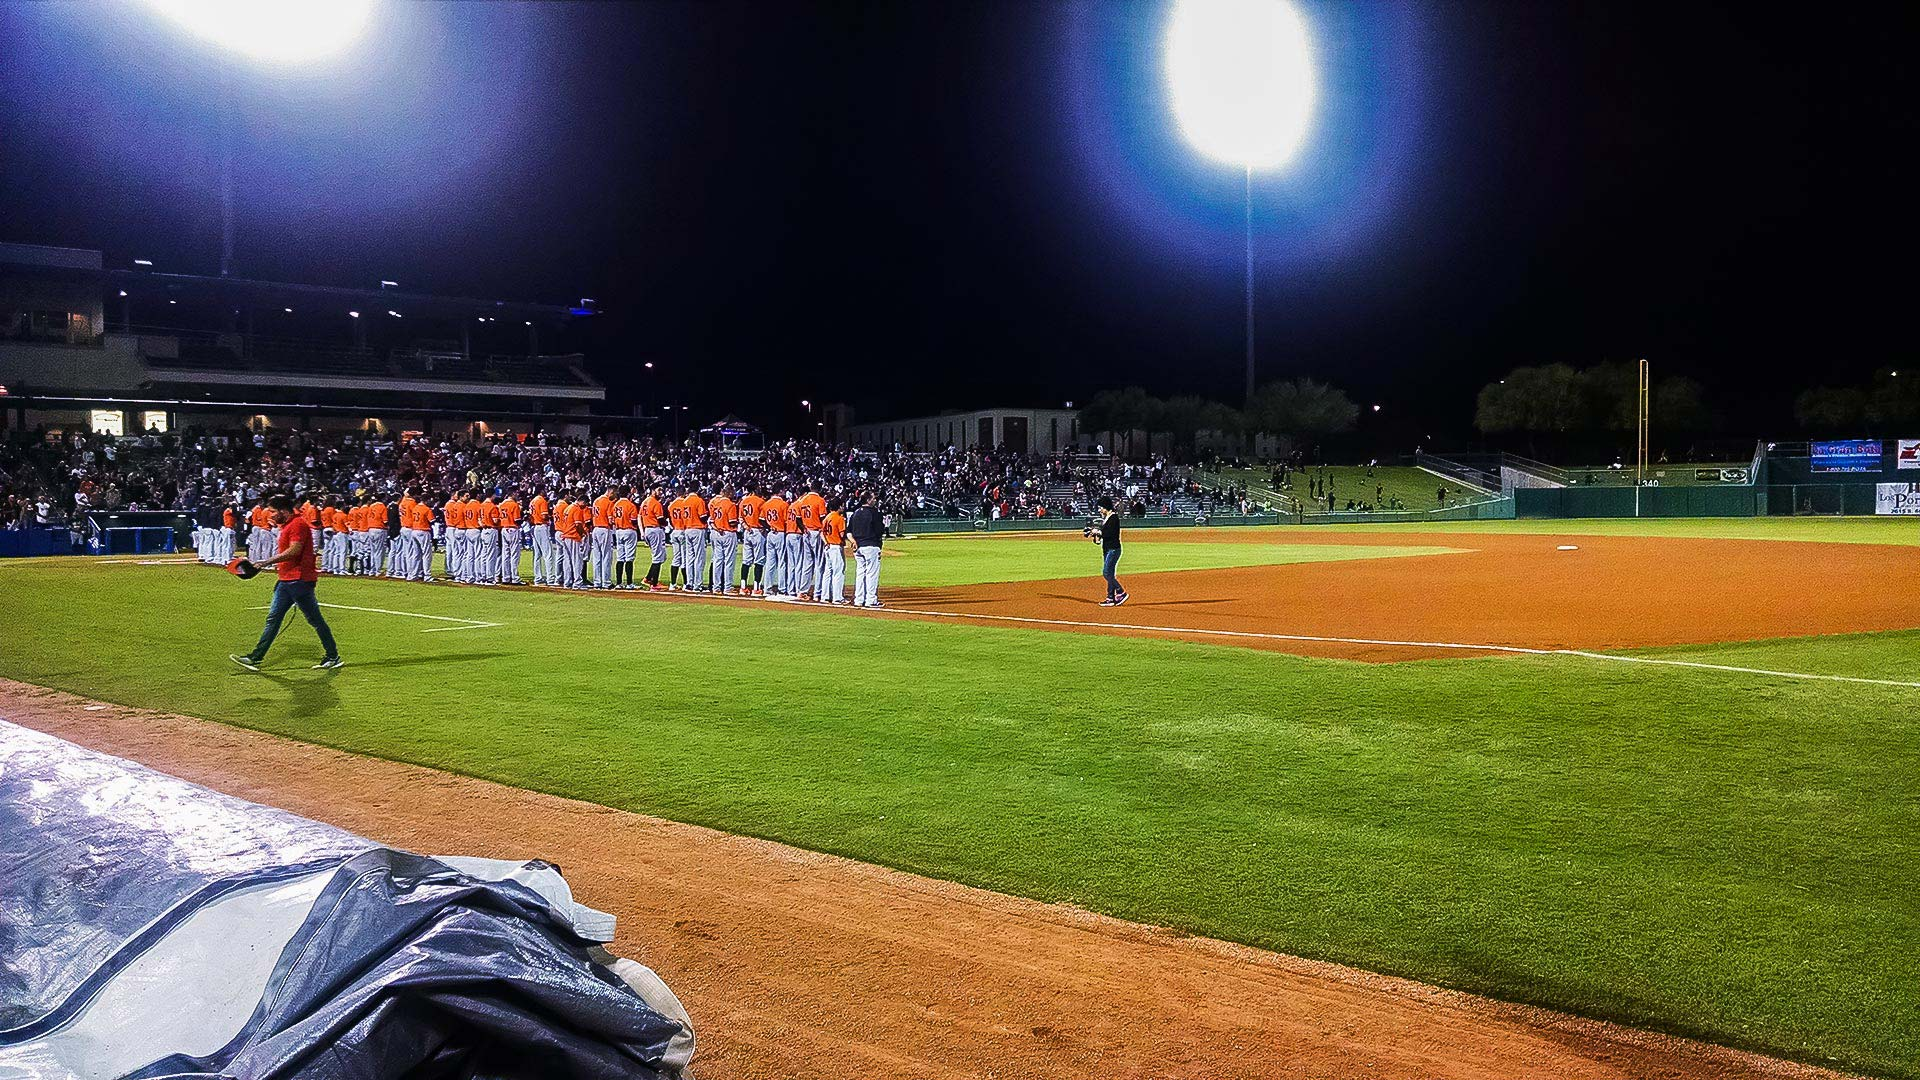 The Naranjeros of Hermosillo, Mexico, line up for the national anthems of Mexico and the U.S. during the Mexican Baseball Fiesta in Tucson, Sept. 29, 2016.